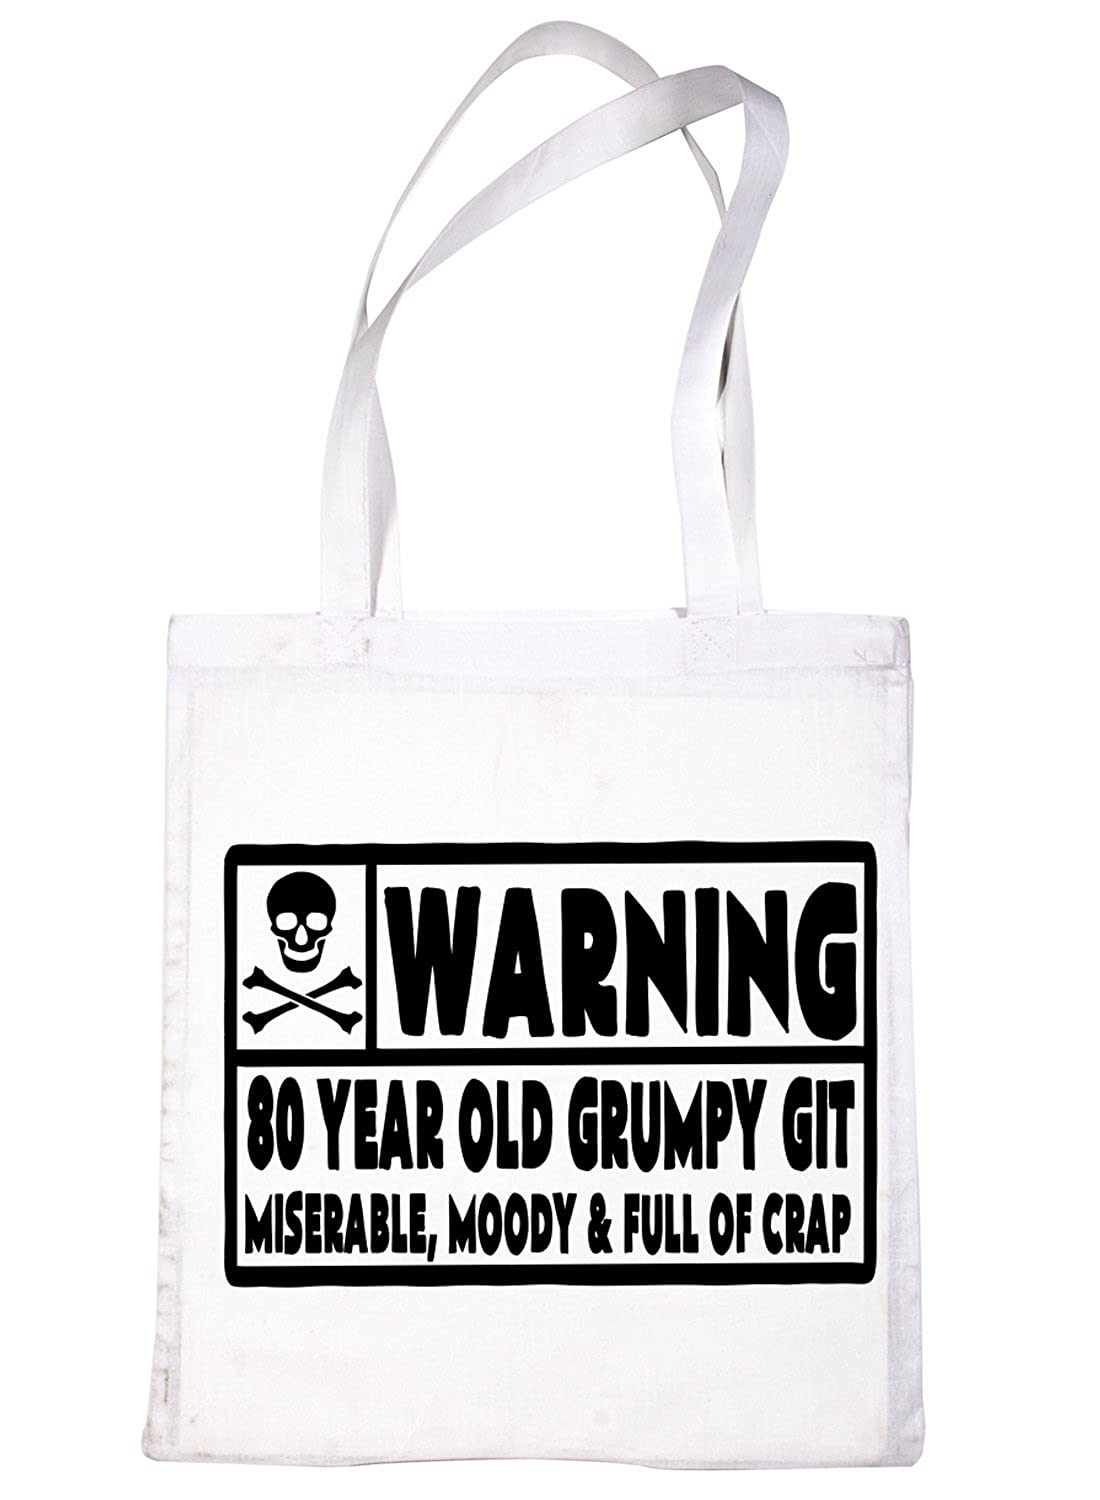 Amazon Print4u 80 Year Old Git 80th Birthday Present Shopping Tote Bag Ladies Gift White Shoes